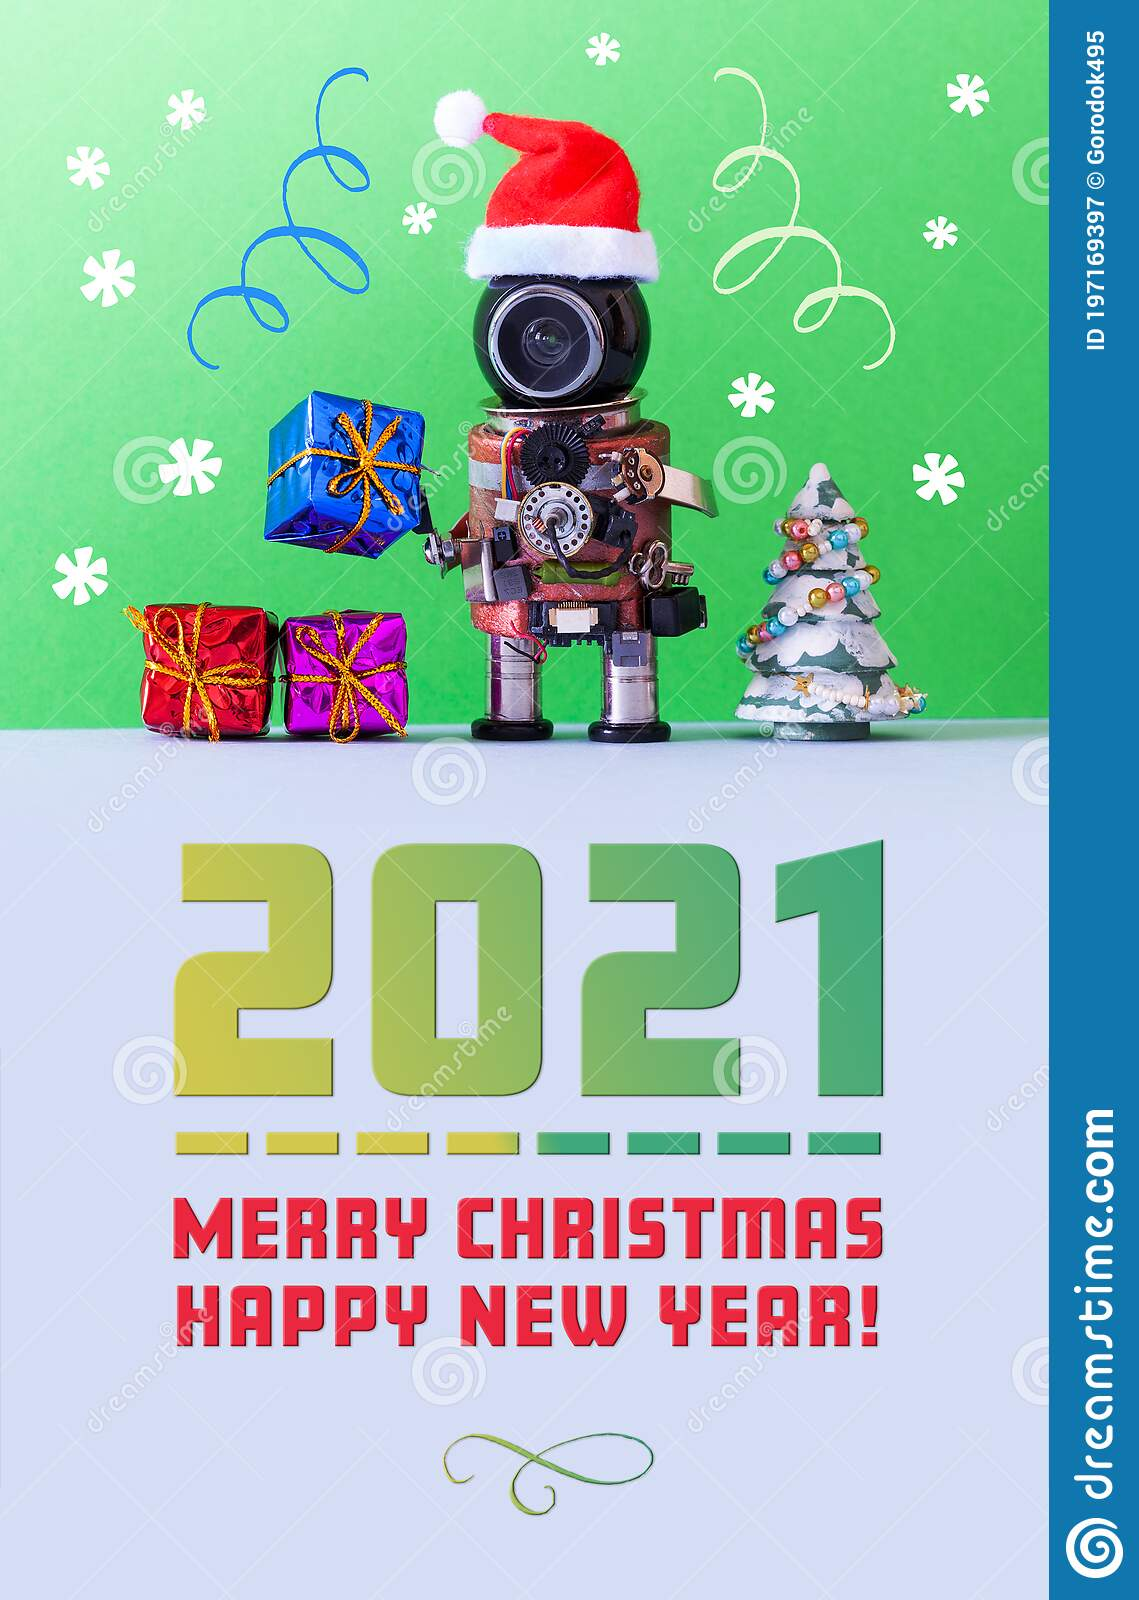 2021 Christmas Robot 186 Merry Christmas Robot Photos Free Royalty Free Stock Photos From Dreamstime